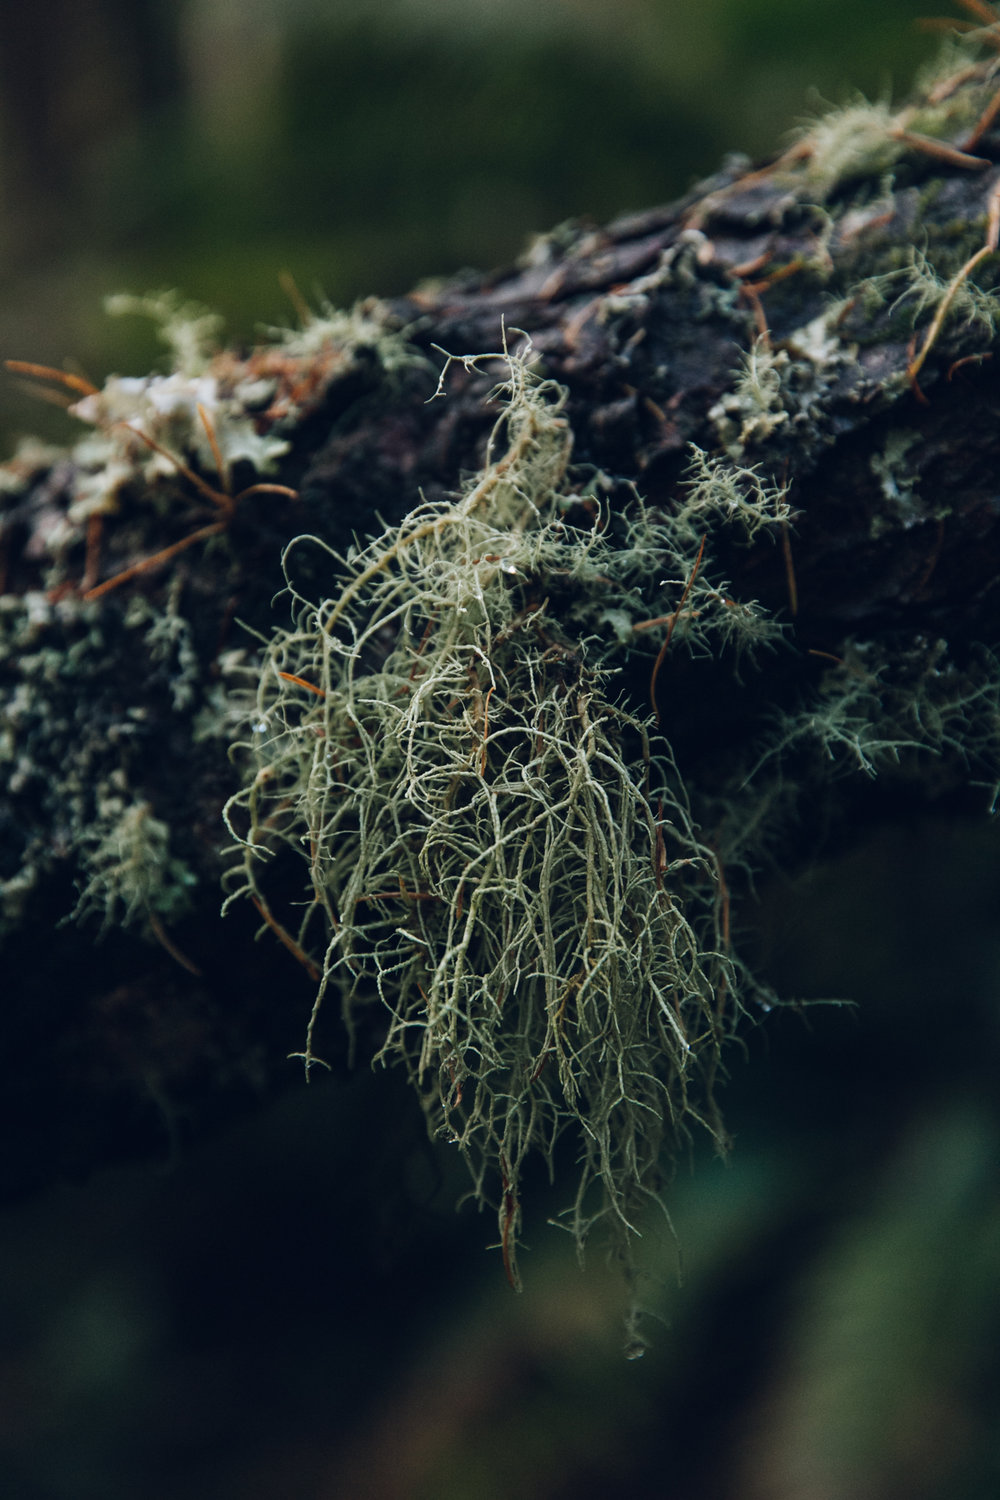 Lichen and moss in the forest.